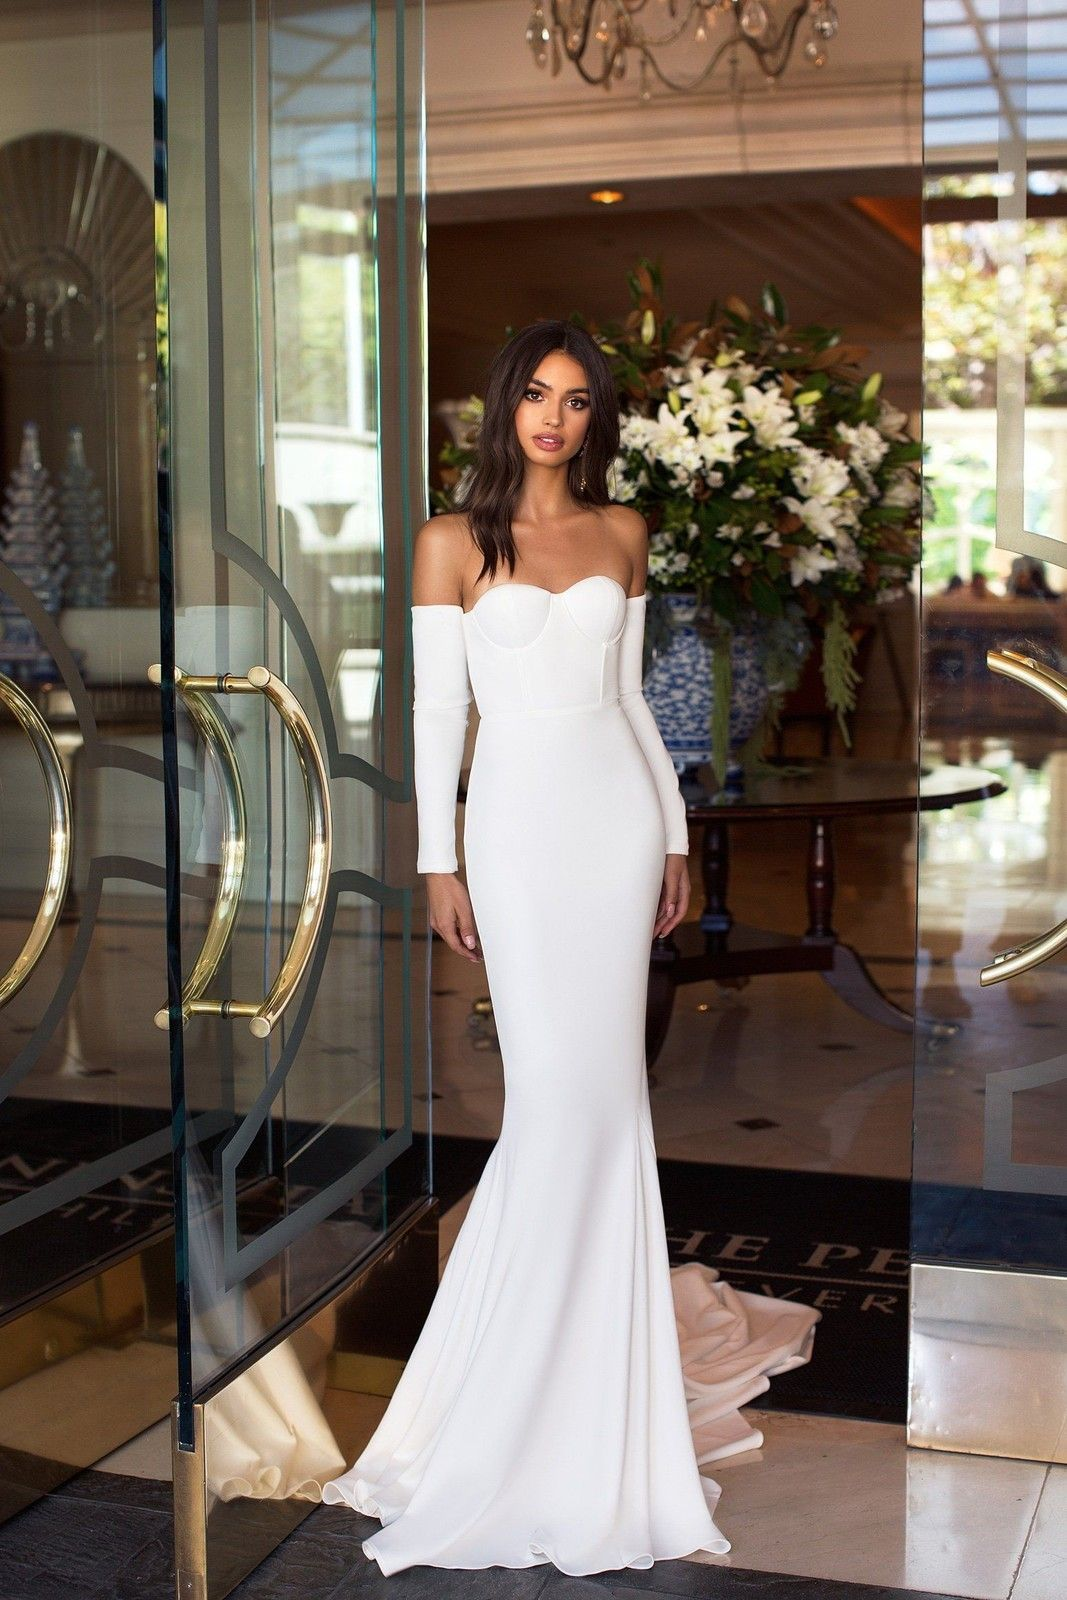 Chic White Prom Dresses Sexy Cheap Mermaid Long Evening Dresses Hot Formal Gowns